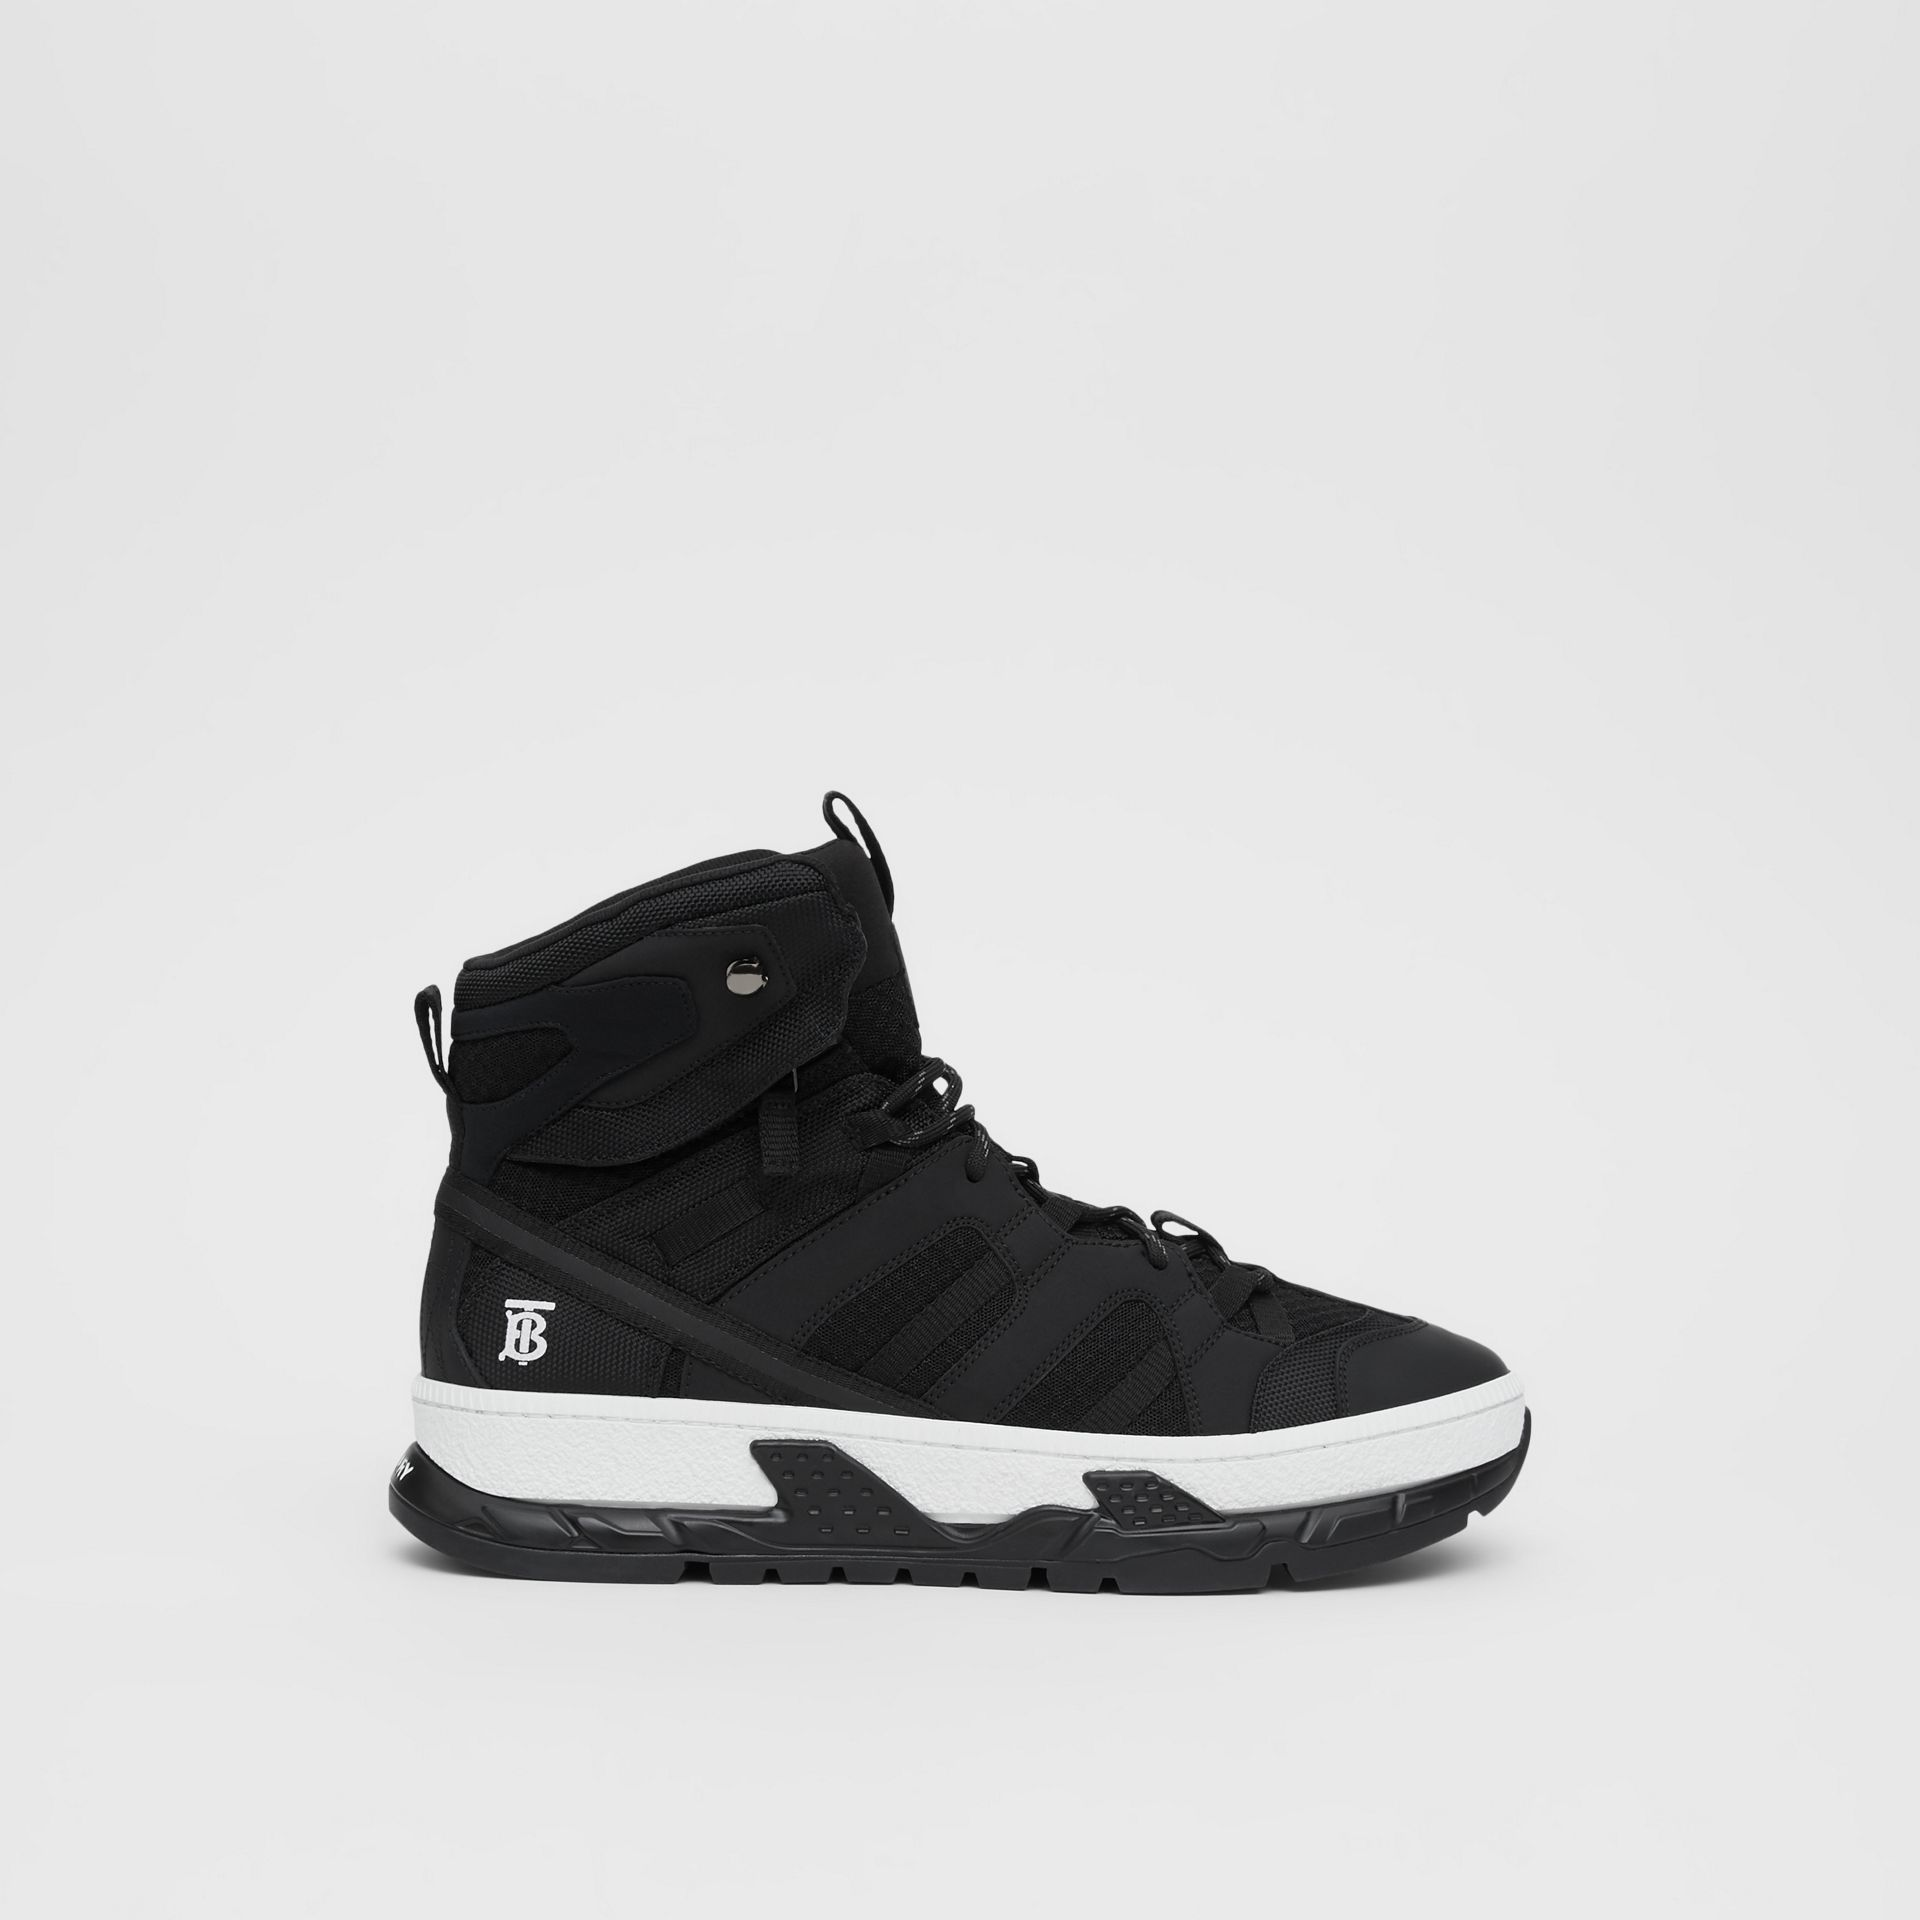 Sneakers montantes Union en filet et nubuck (Noir) - Homme | Burberry - photo de la galerie 5